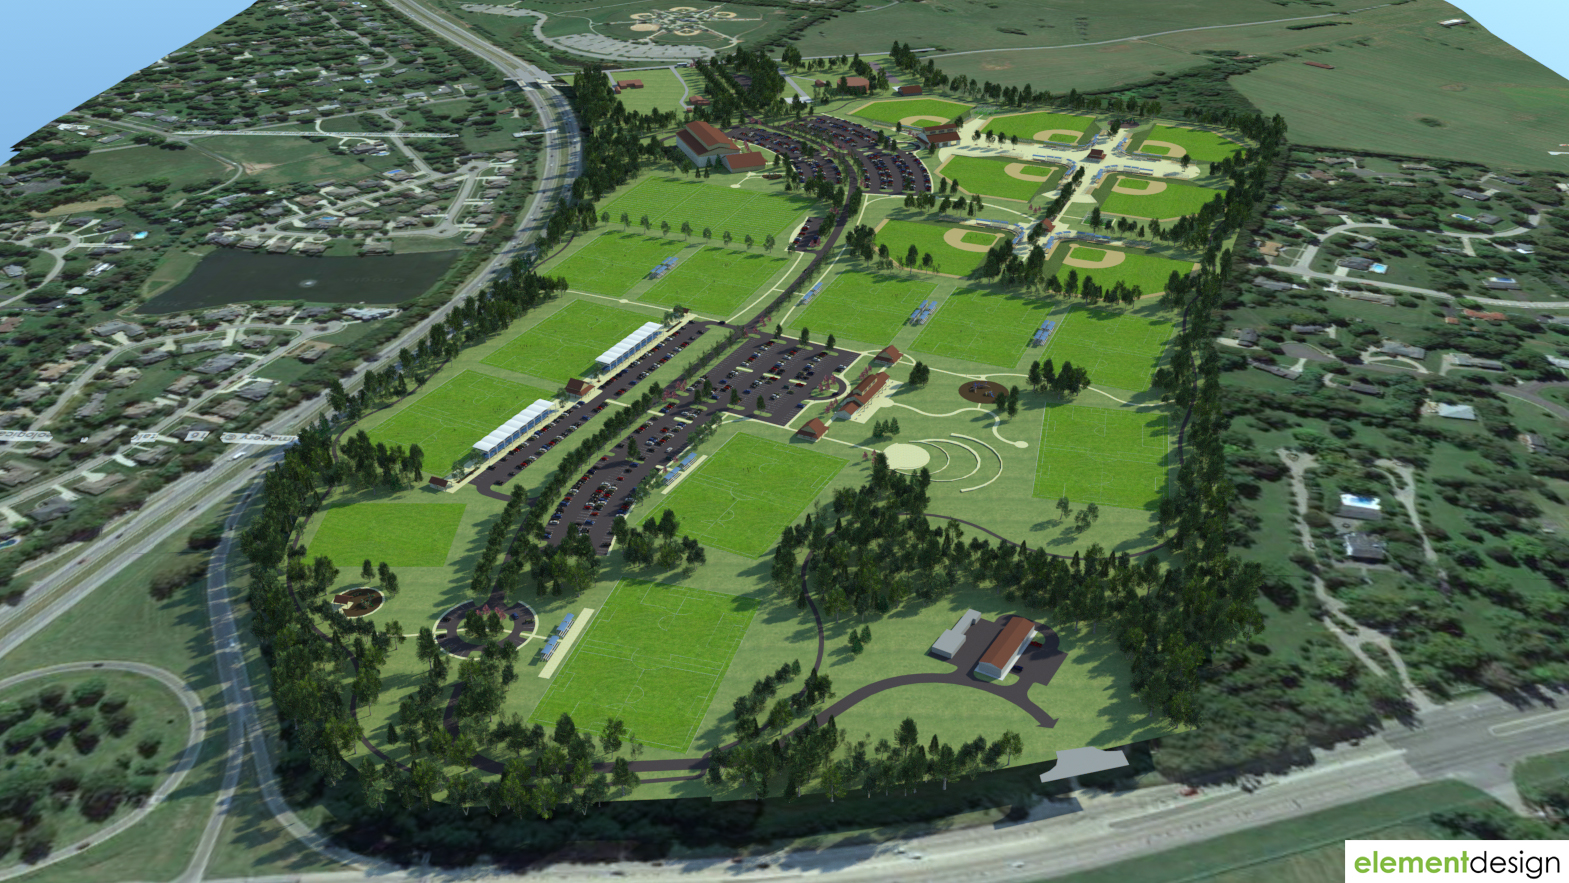 Herald Leader Article: Proposed youth sports complex would be a boon